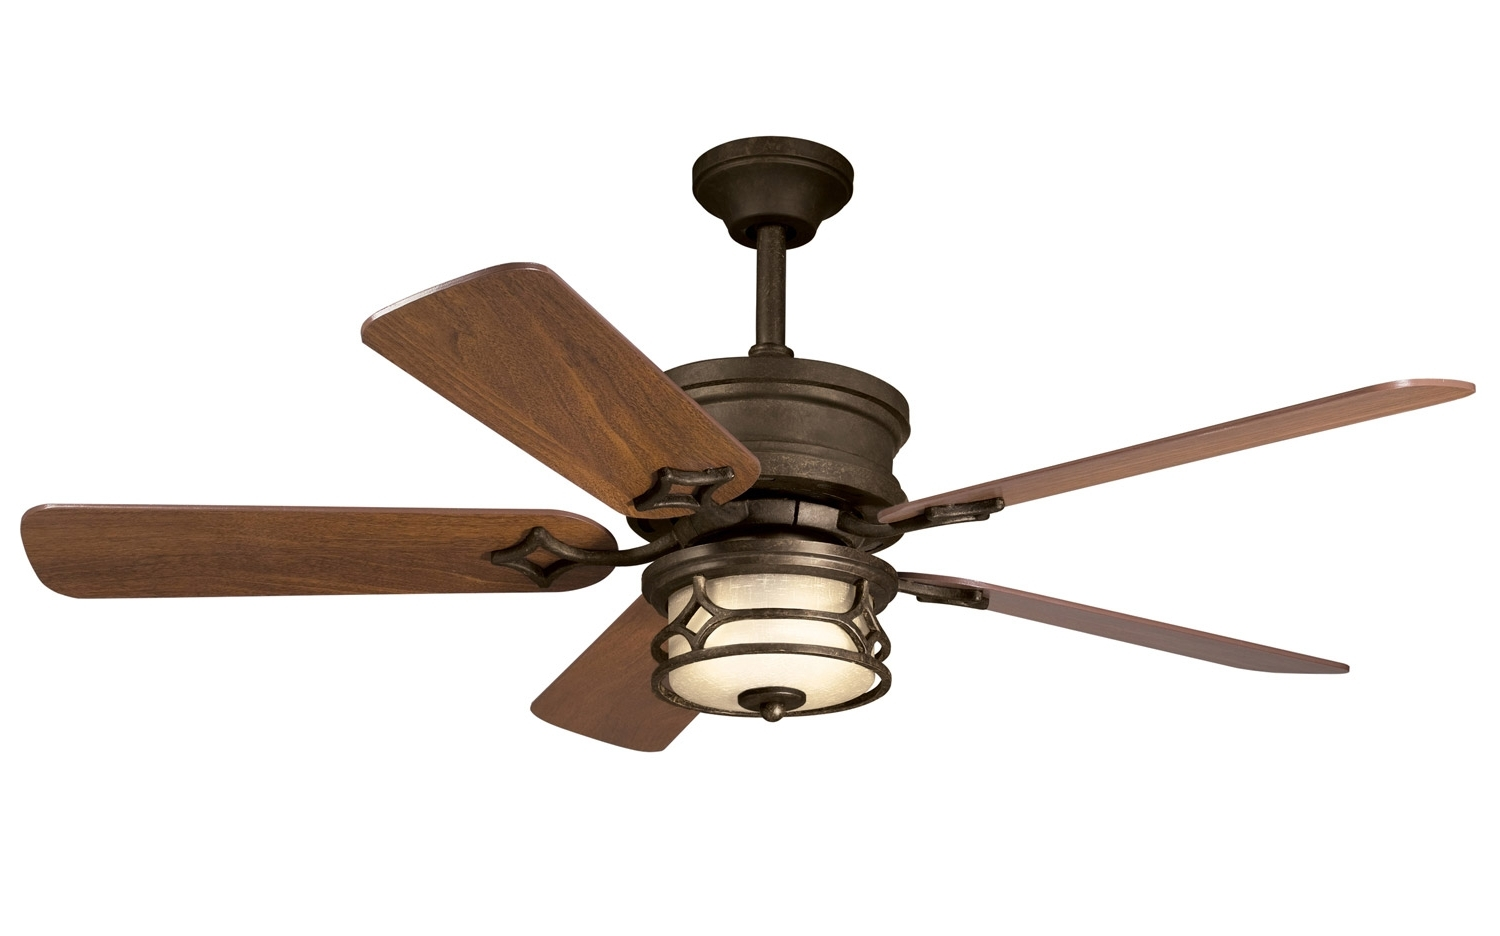 Craftsman Outdoor Ceiling Fans In Most Current Craftsman Ceiling Fans With Lights Simple Outdoor Ceiling Fan With (View 4 of 20)